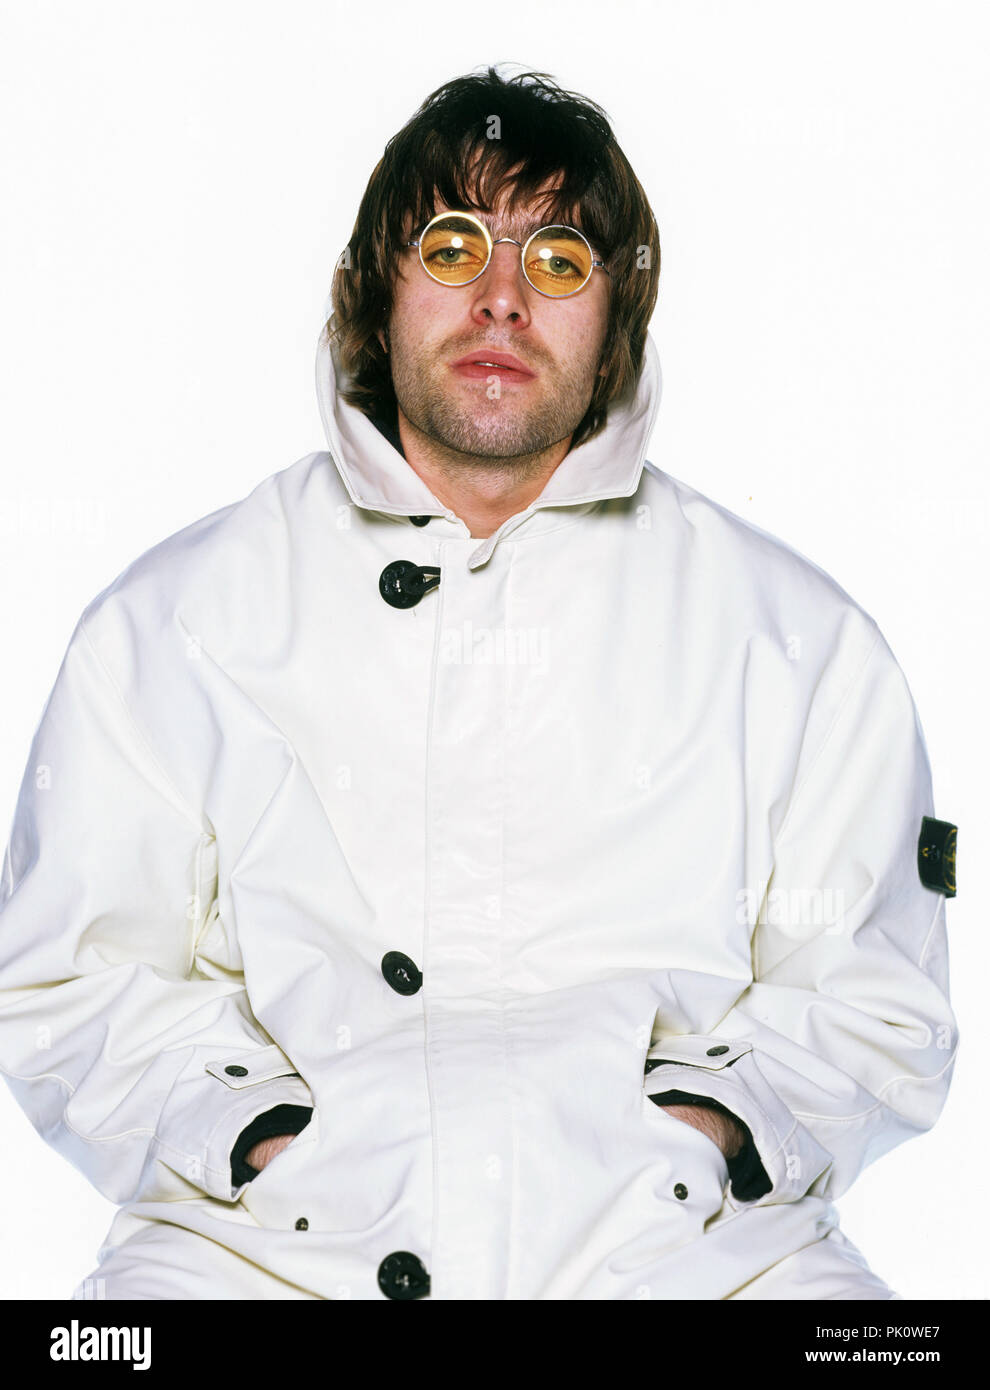 Liam Gallagher (Oasis) on 27.03.1996 in München / Munich. | usage worldwide - Stock Image